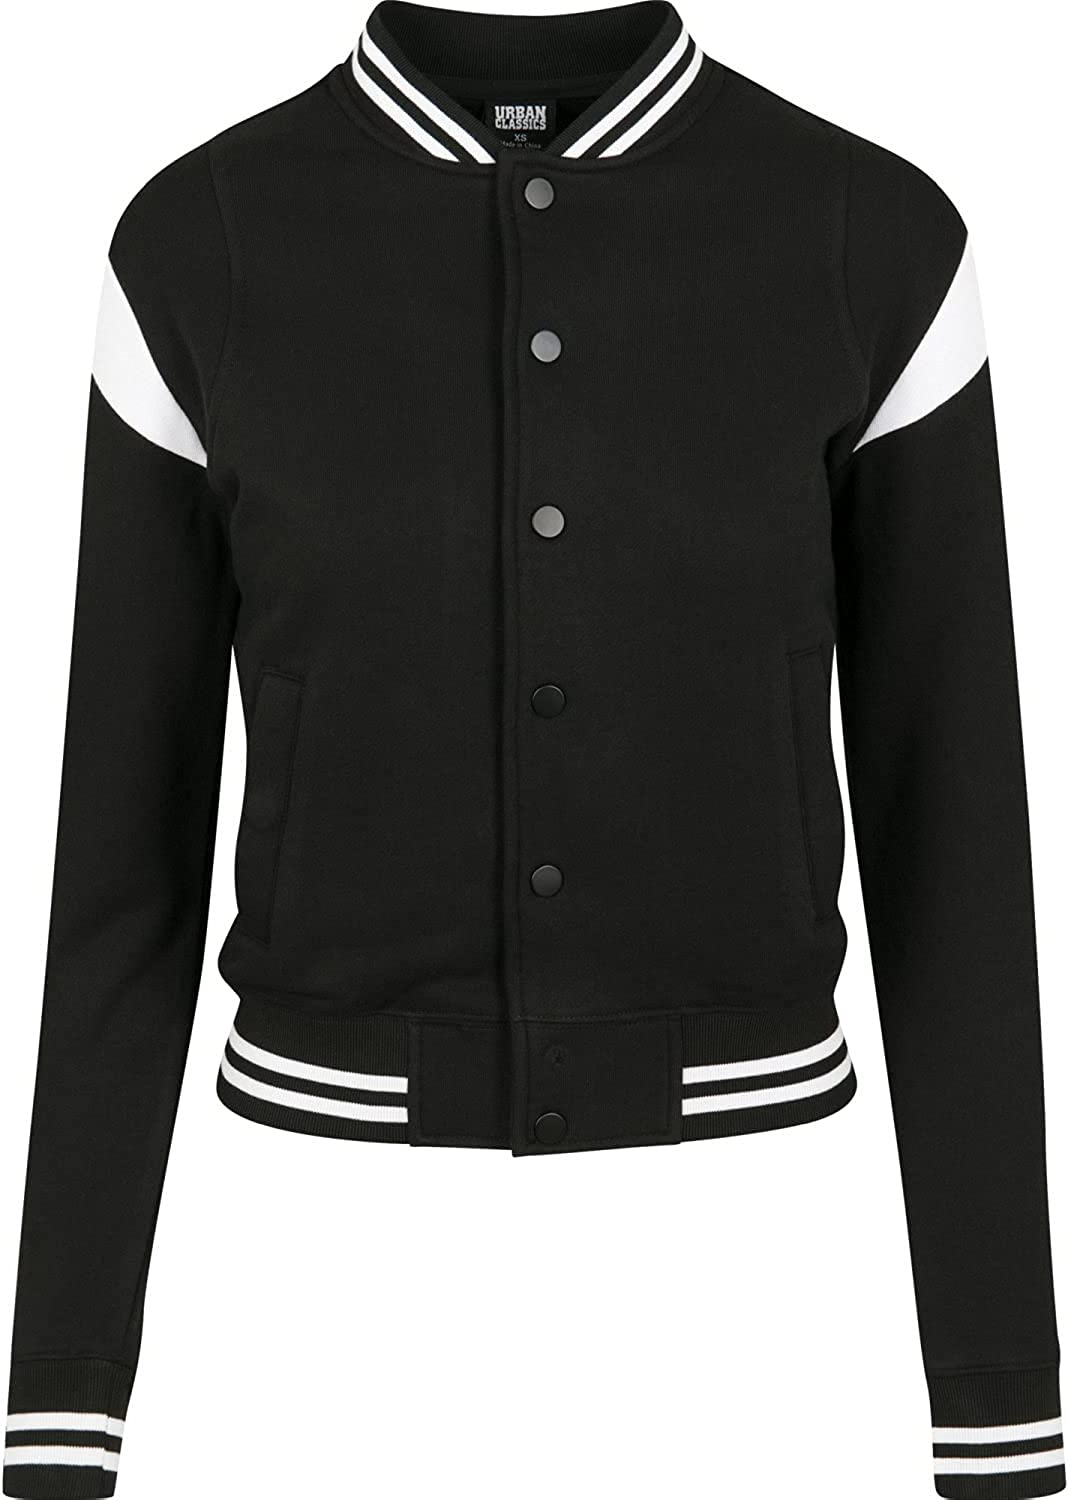 Urban Classics Women ! Super beauty product restock quality top! College Inset Jacket Large discharge sale